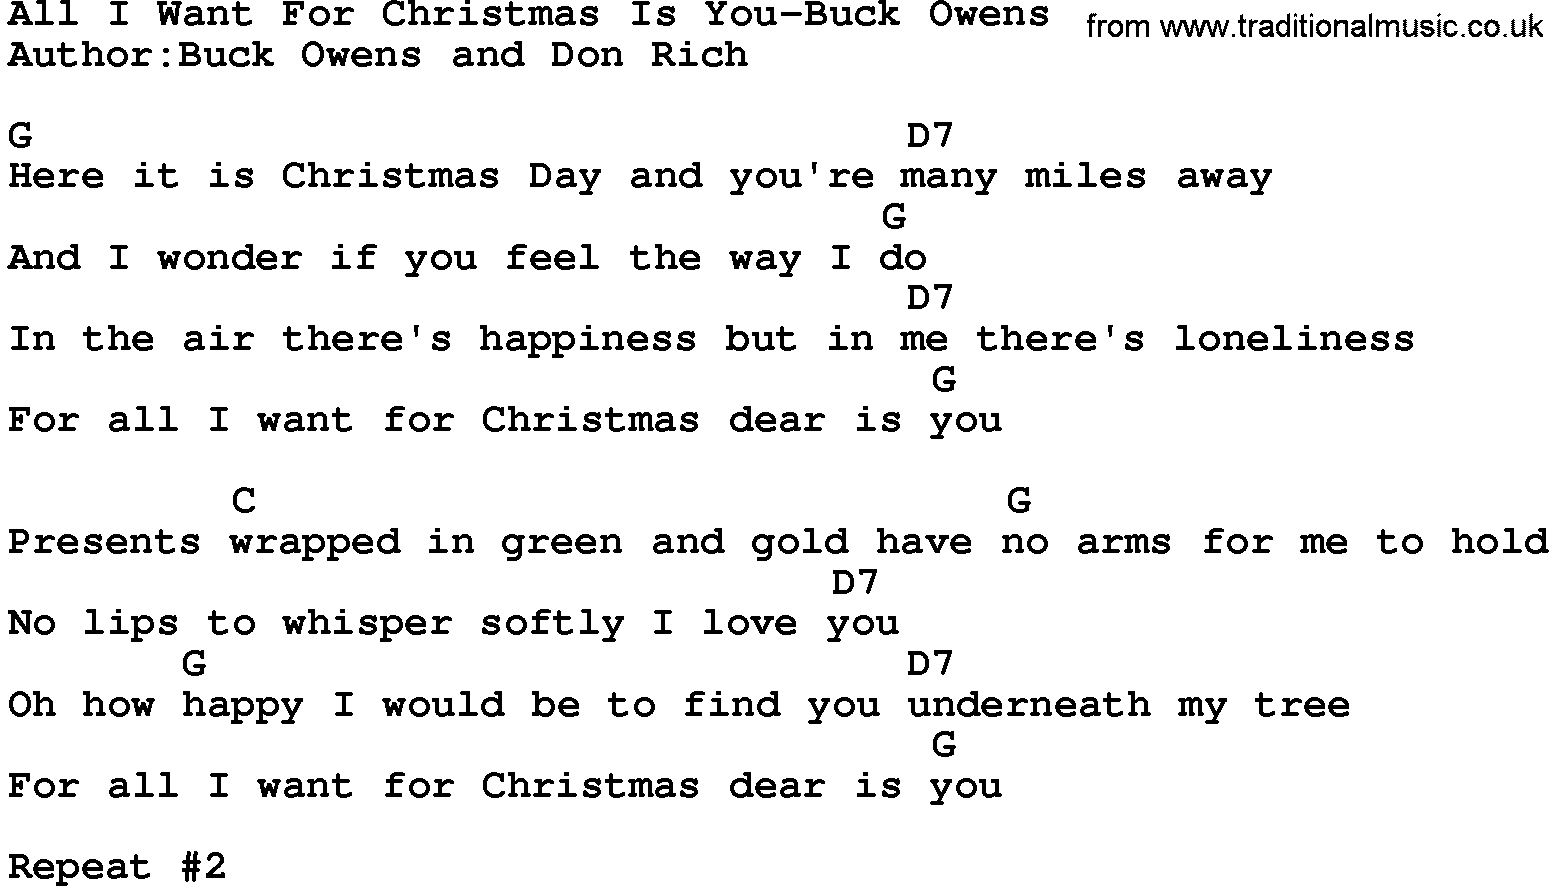 Country musicall i want for christmas is you buck owens lyrics country musicall i want for christmas is you buck owens lyrics and chords hexwebz Images